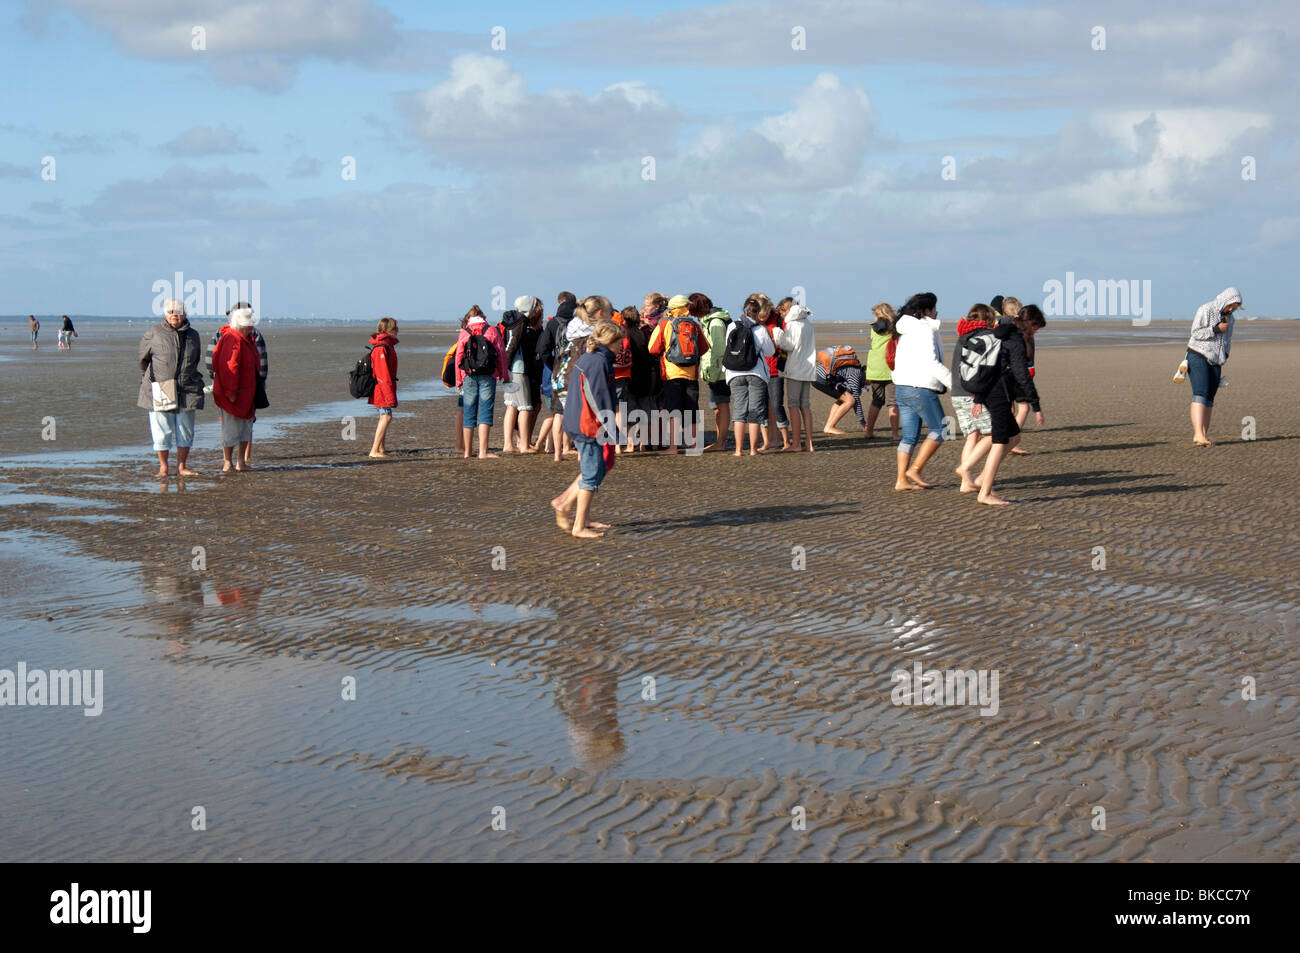 Tourists on mud flats of the Wadden Sea with guide giving biological information. - Stock Image